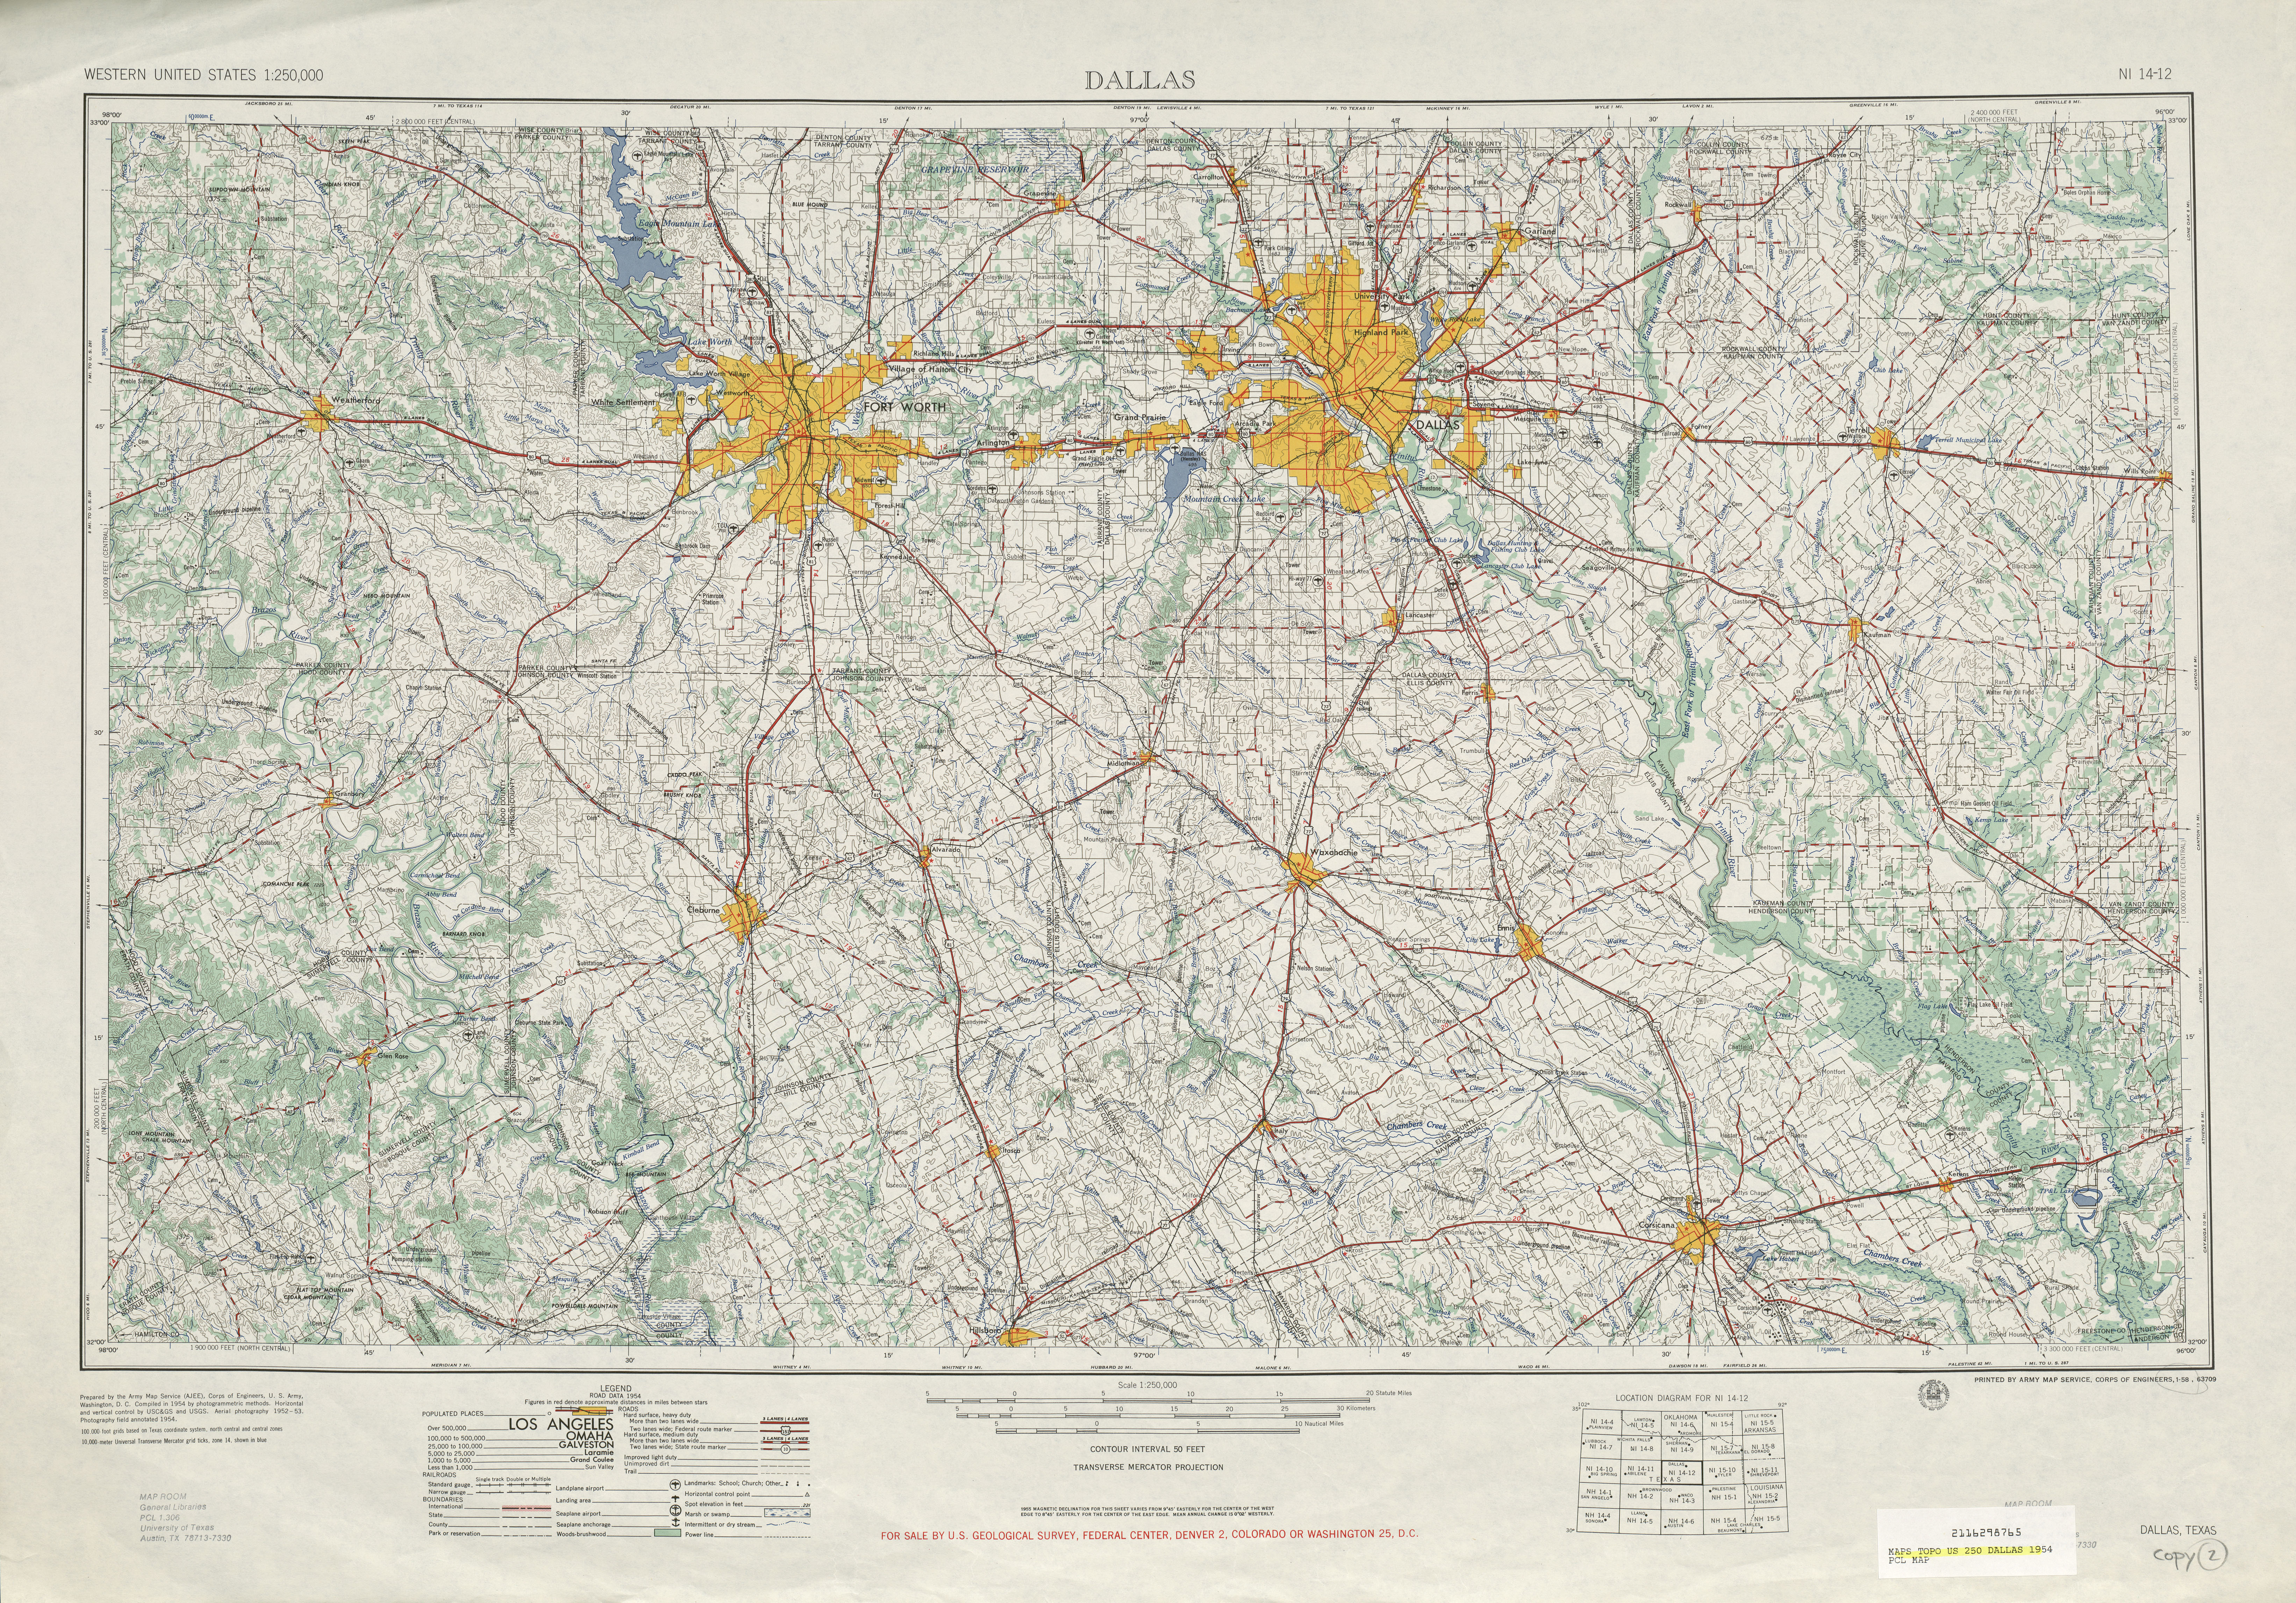 Dallas Topographic Map Sheet, United States 1954